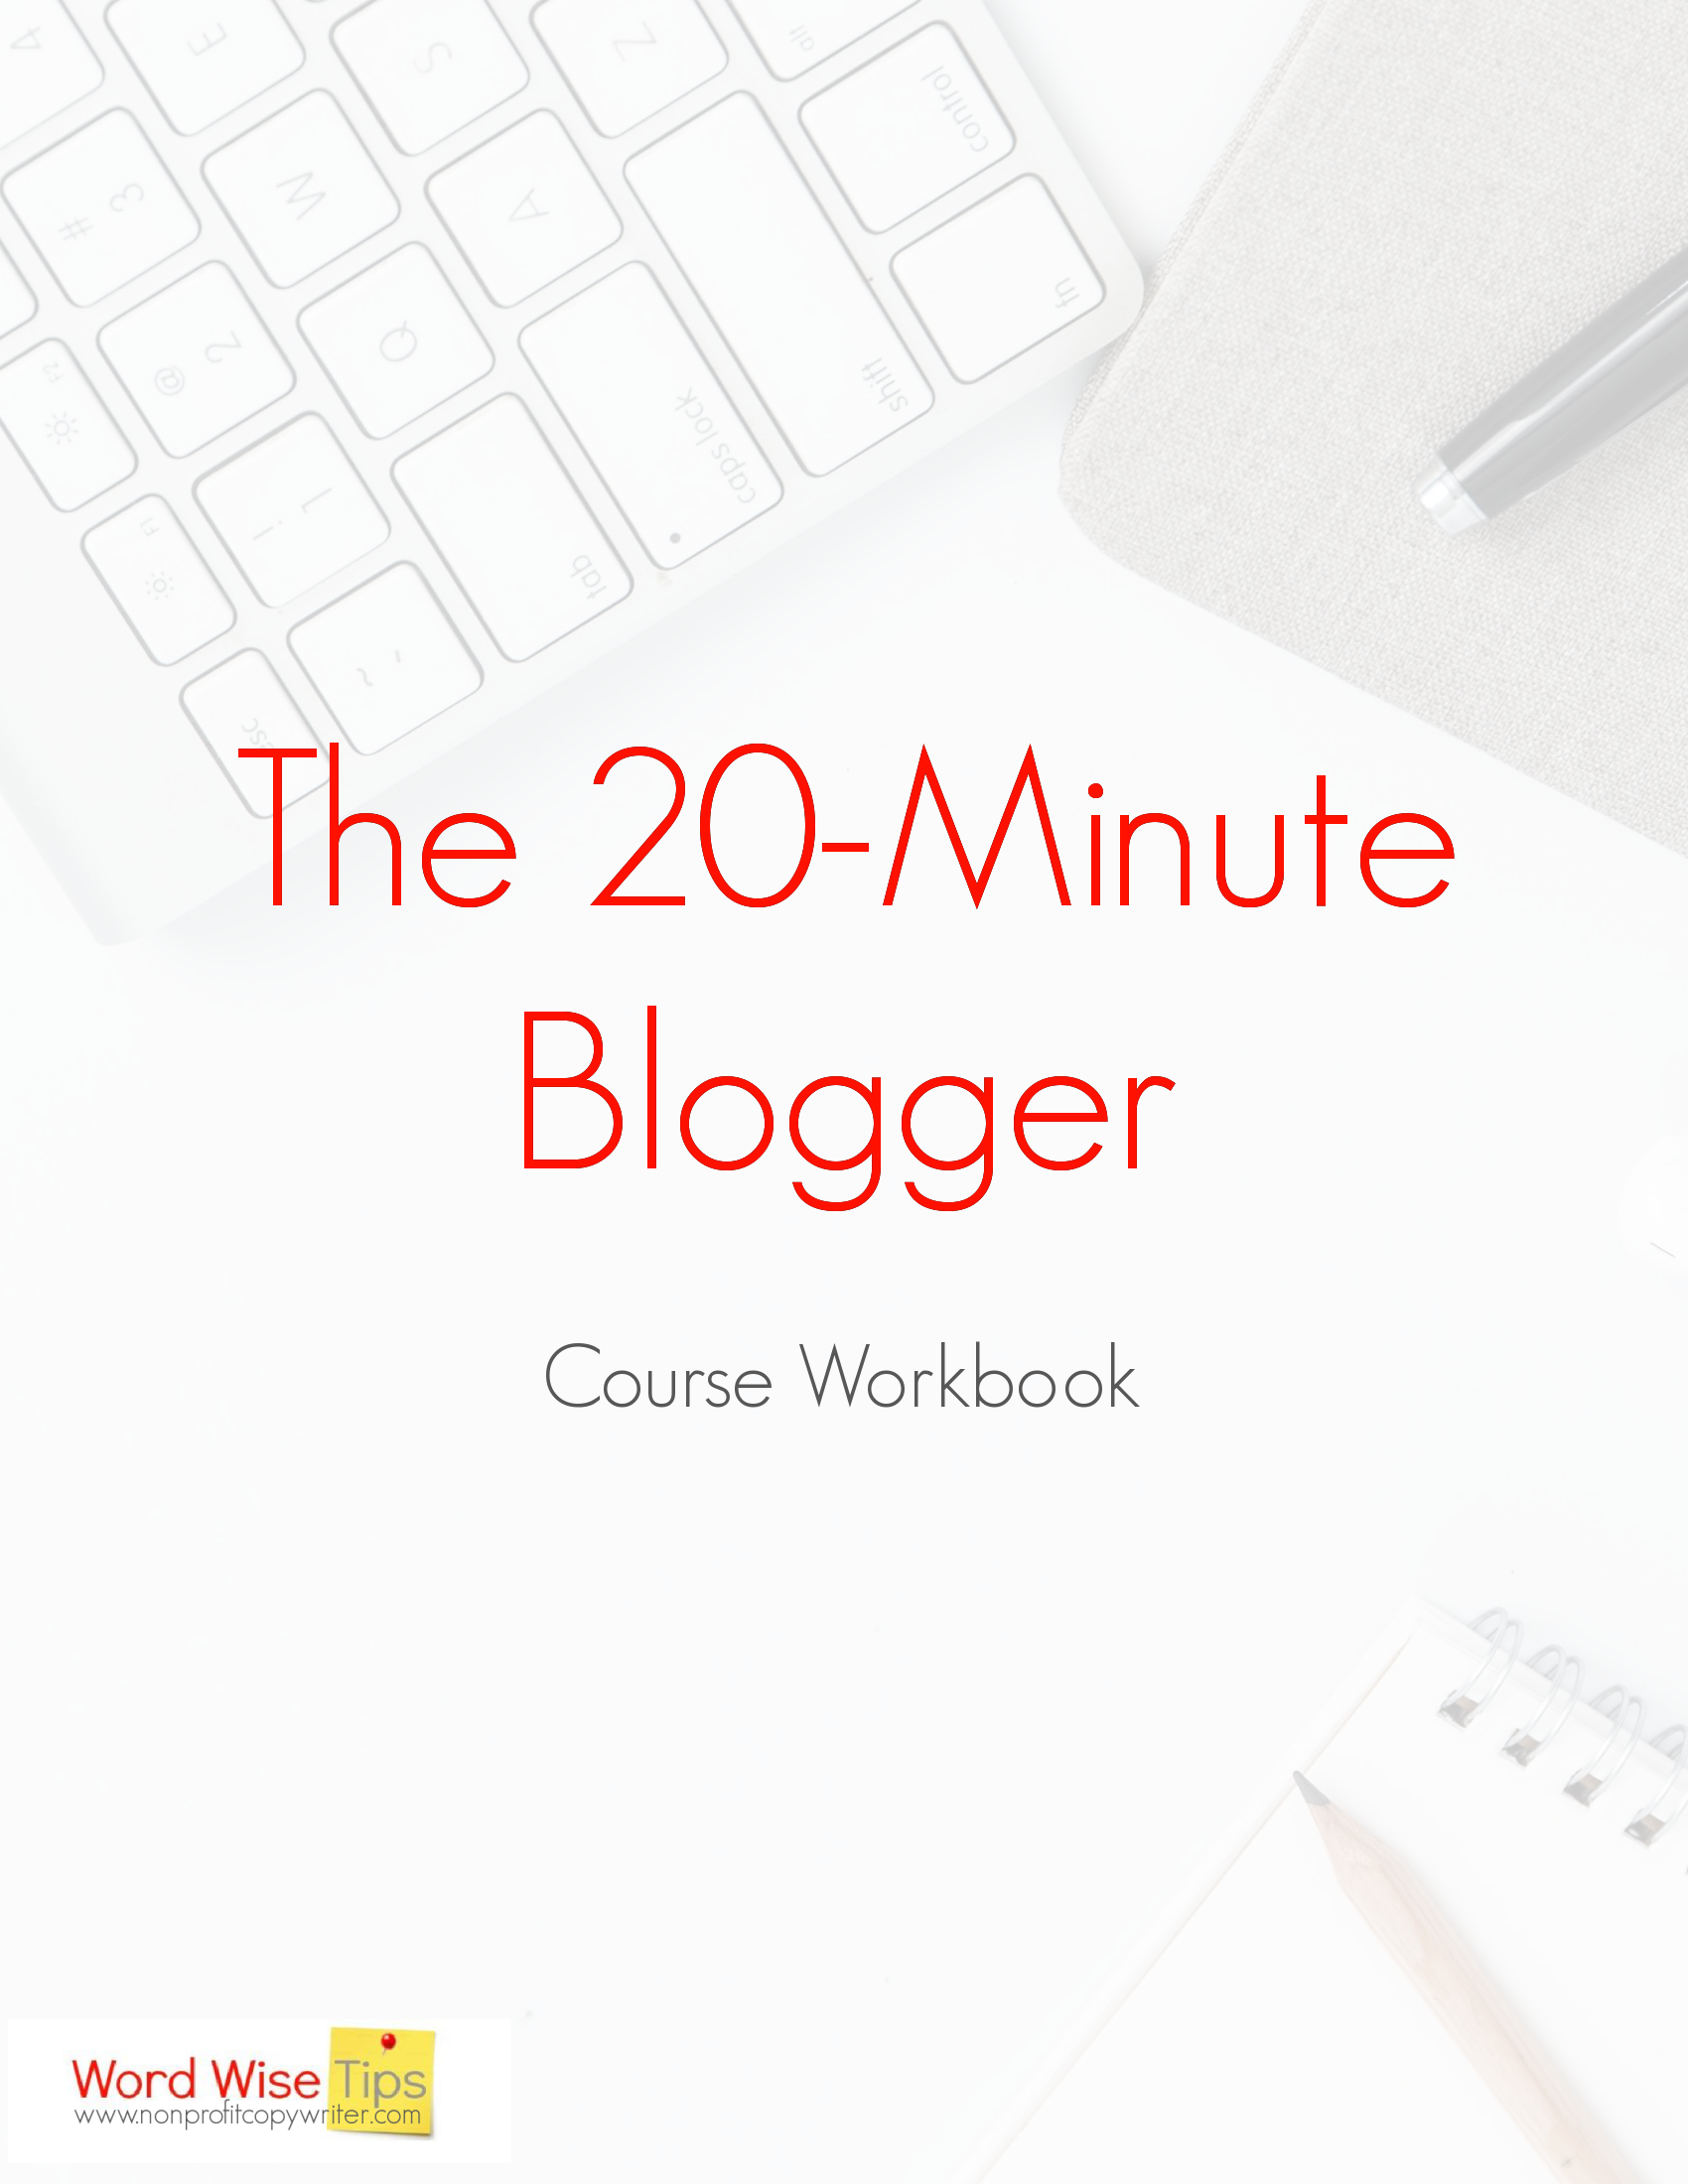 The 20-Minute Blogger: take a writing course that helps you use your time well with Word Wise at Nonprofit Copywriter #Blogging #WritingCourses